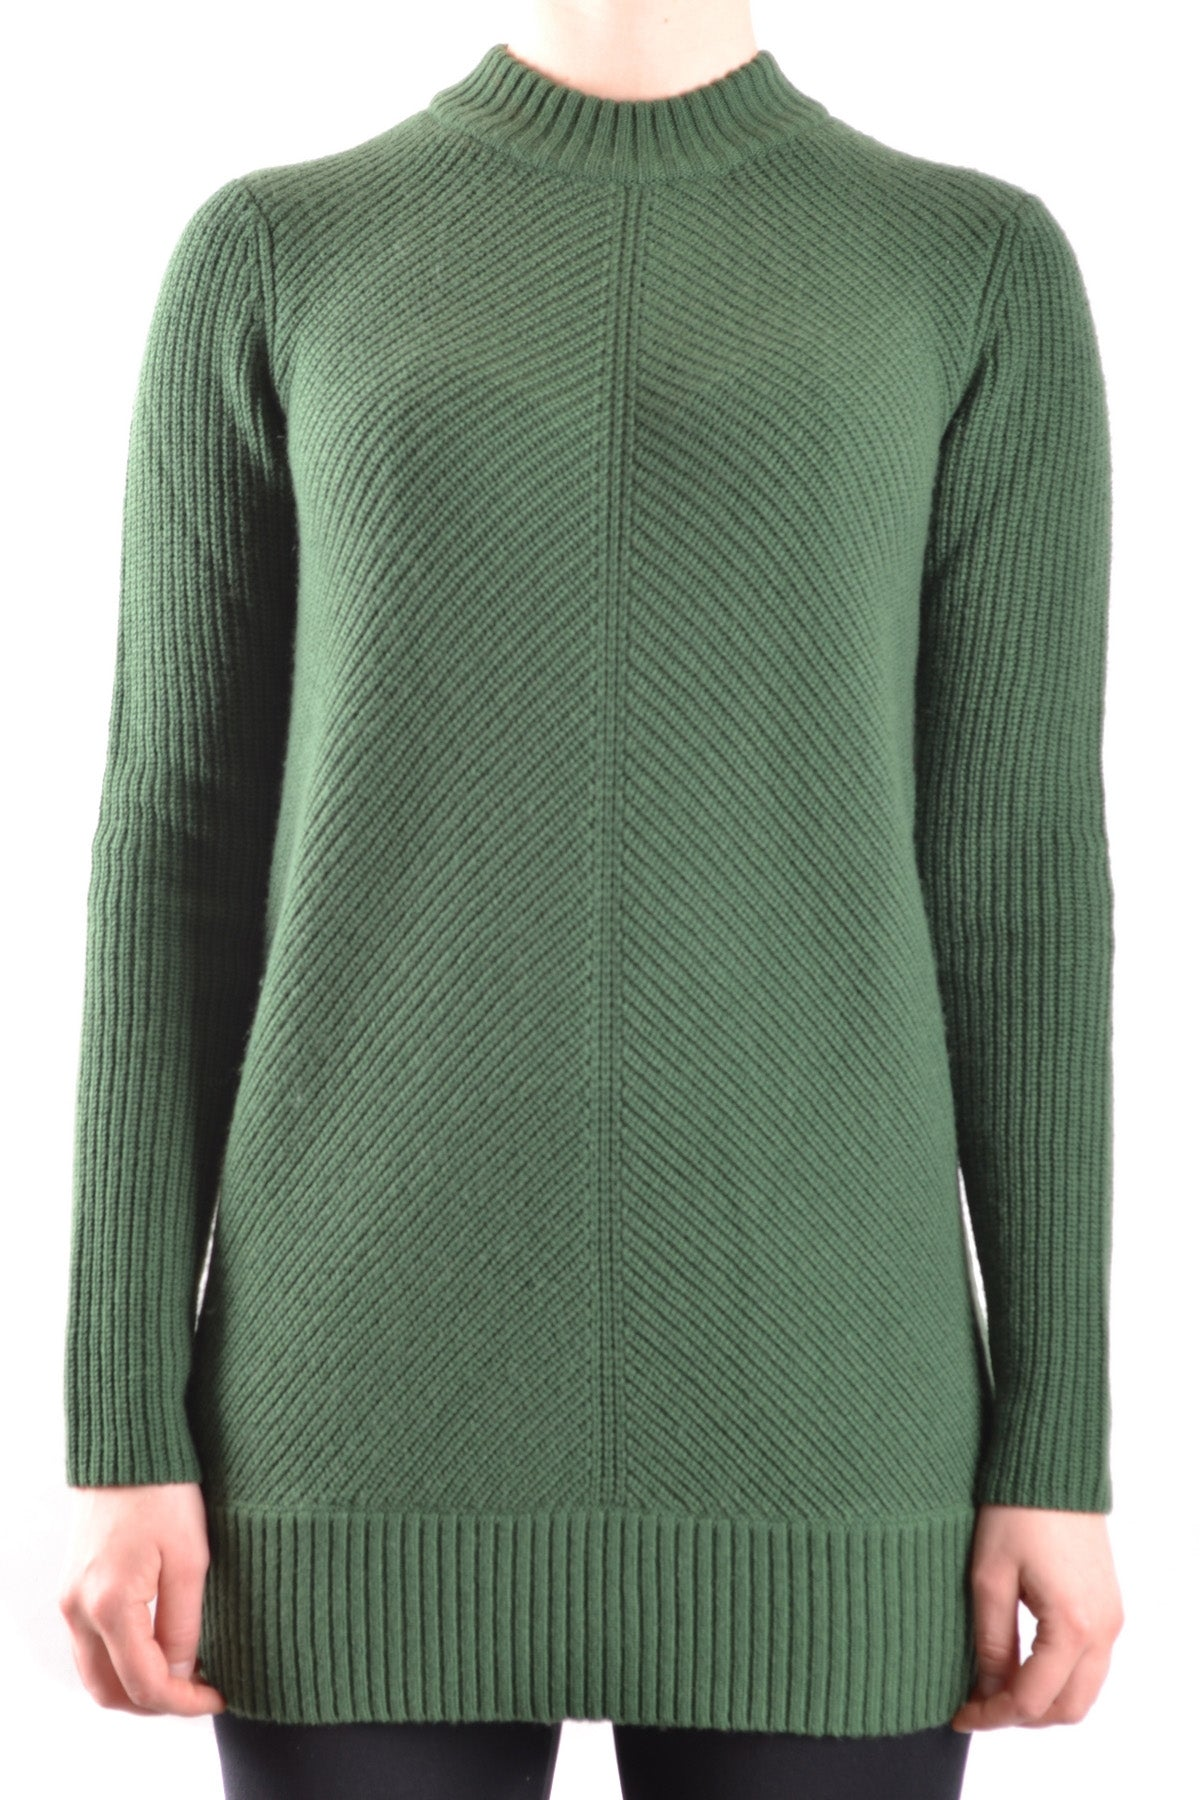 Sweater Michael Kors-Sweaters - WOMAN-Product Details Terms: New With LabelYear: 2017Main Color: GreenGender: WomanMade In: ChinaSize: IntSeason: Fall / WinterClothing Type: Sweater And CardiganComposition: Cashmere 30%, Merino Wool 100%-Keyomi-Sook